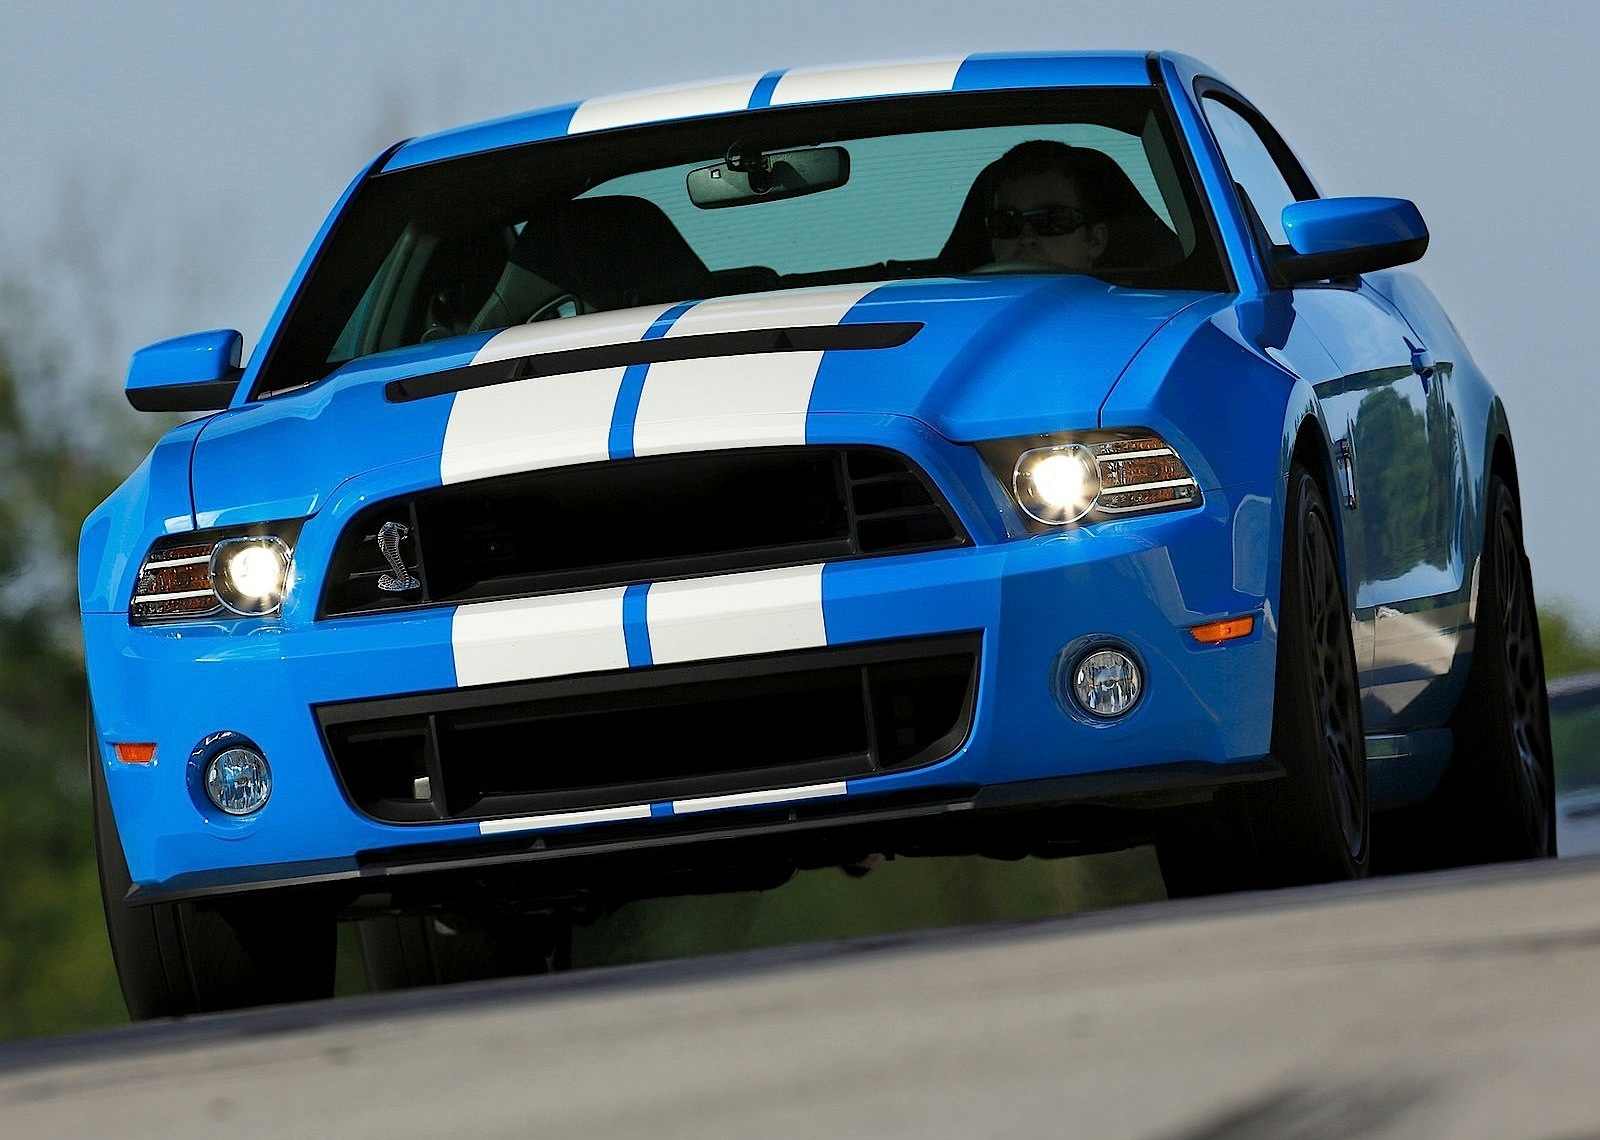 2017 Ford Shelby Gt >> FORD Mustang Shelby GT500 - 2012, 2013, 2014, 2015, 2016, 2017 - autoevolution